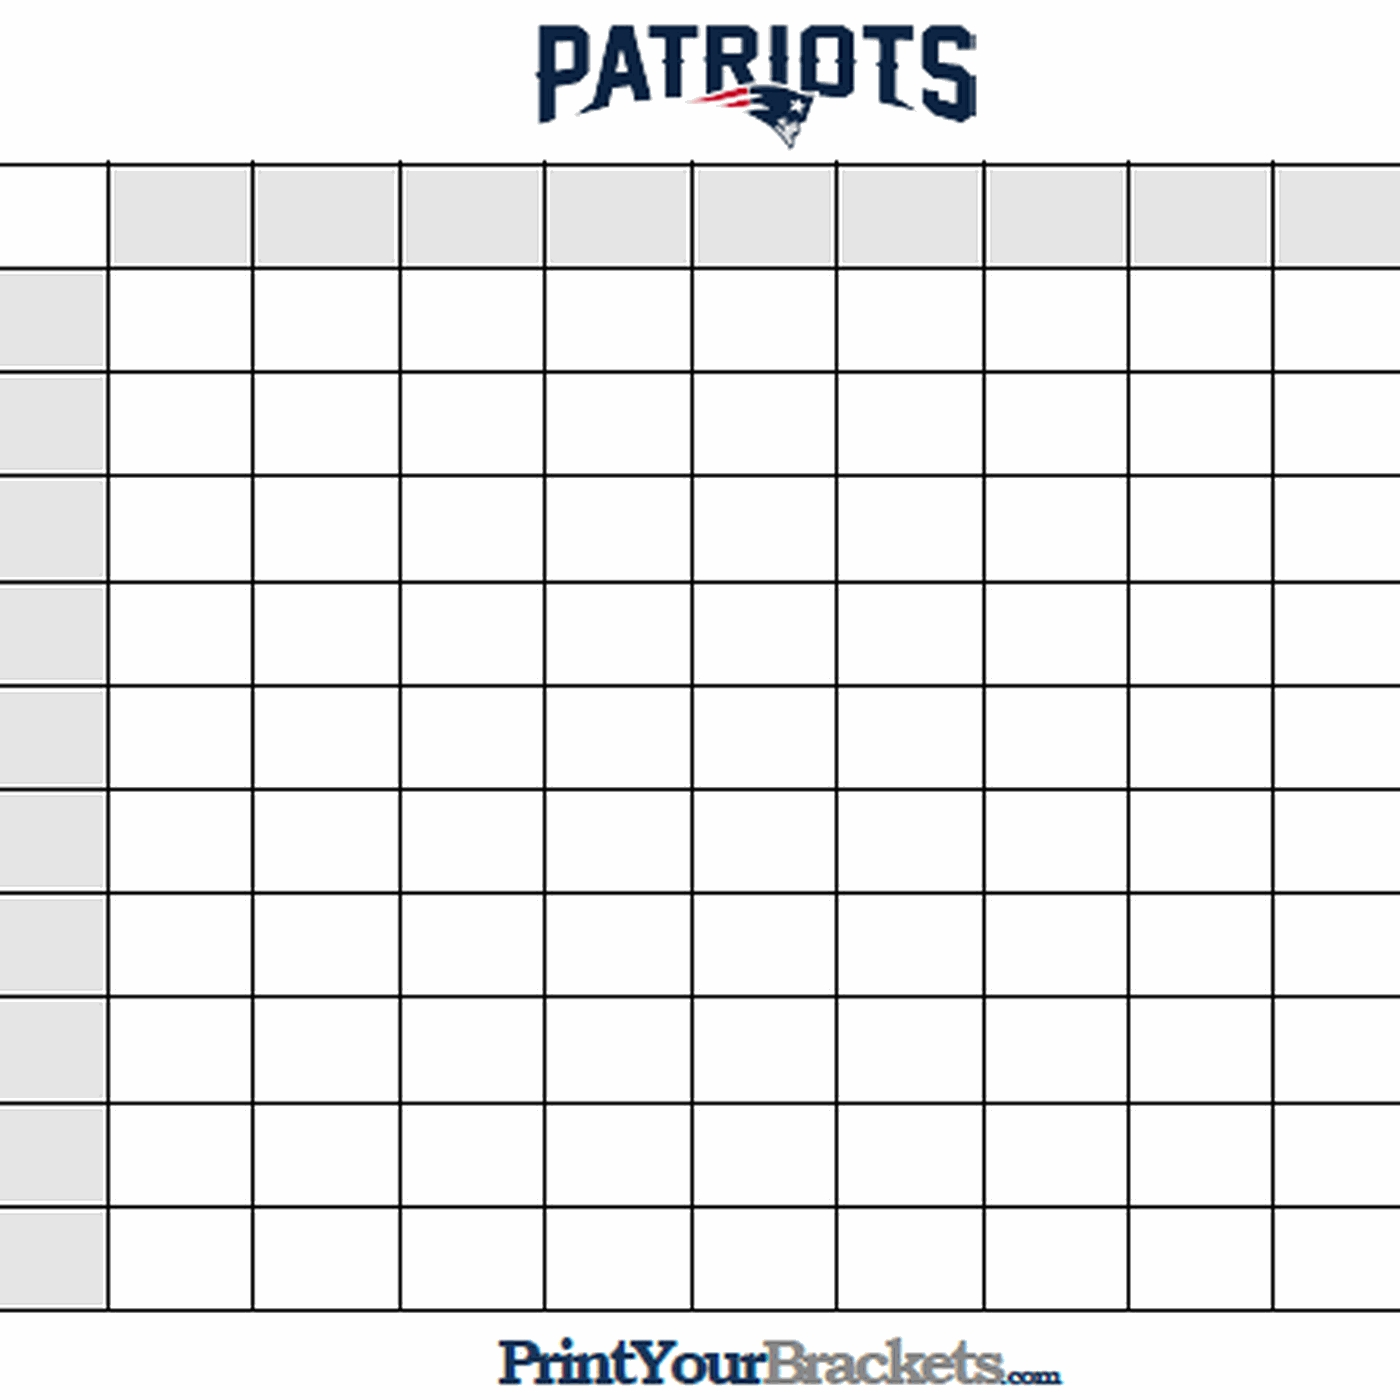 Super Bowl Squares Template, How To Play Online, And More intended for Super Bowl Box Layout